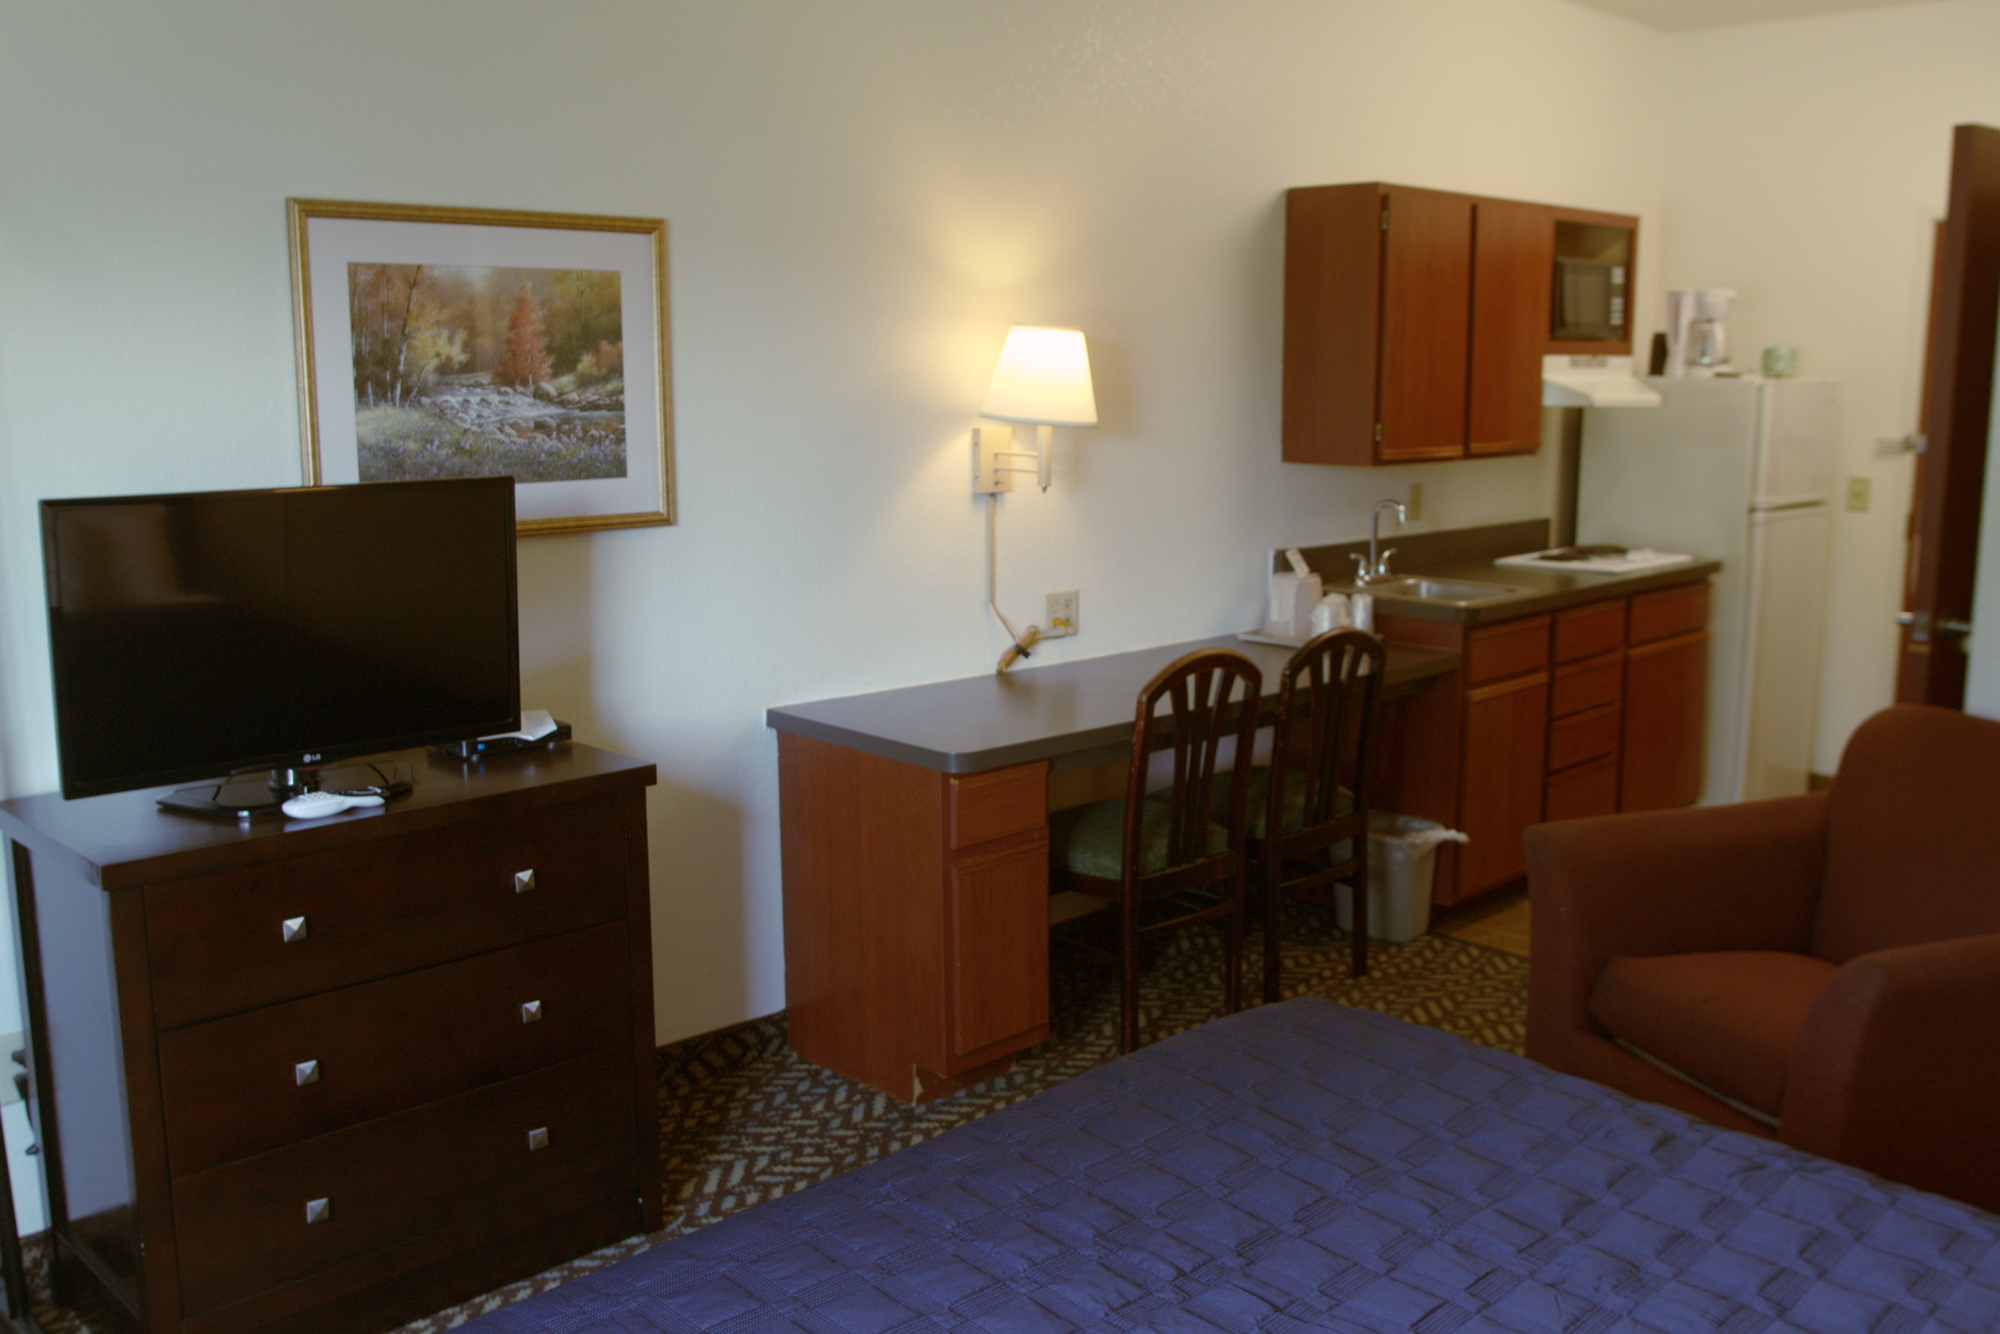 Looking for temporary housing or an extended stay hotel, we have you covered in our extended stay hotel; featuring studios and suites.